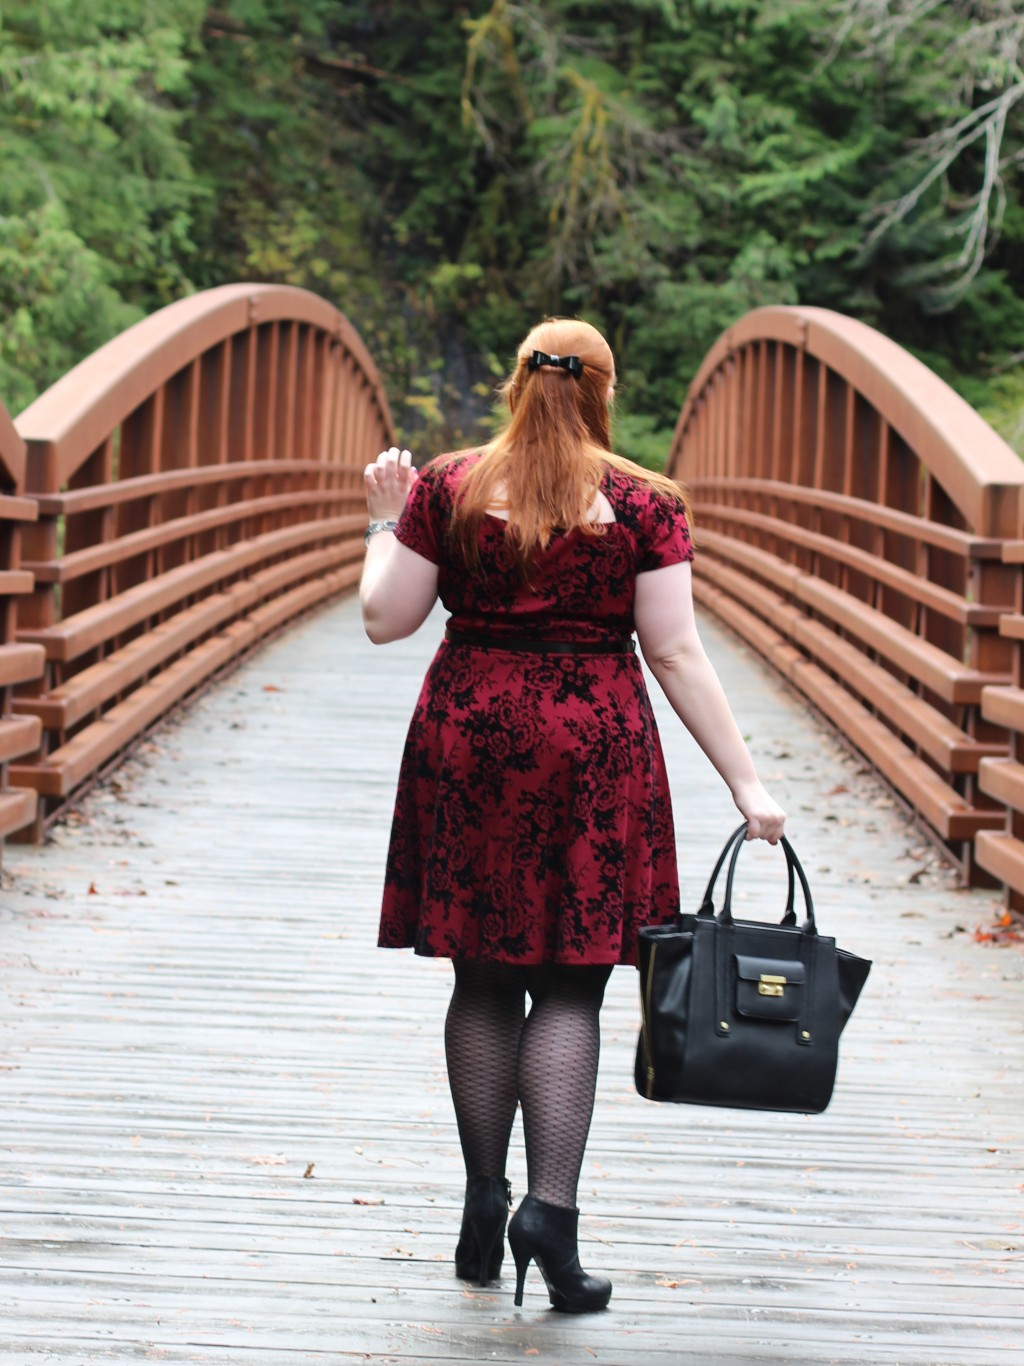 Kate Retherford, Redhead Fashion Blogger